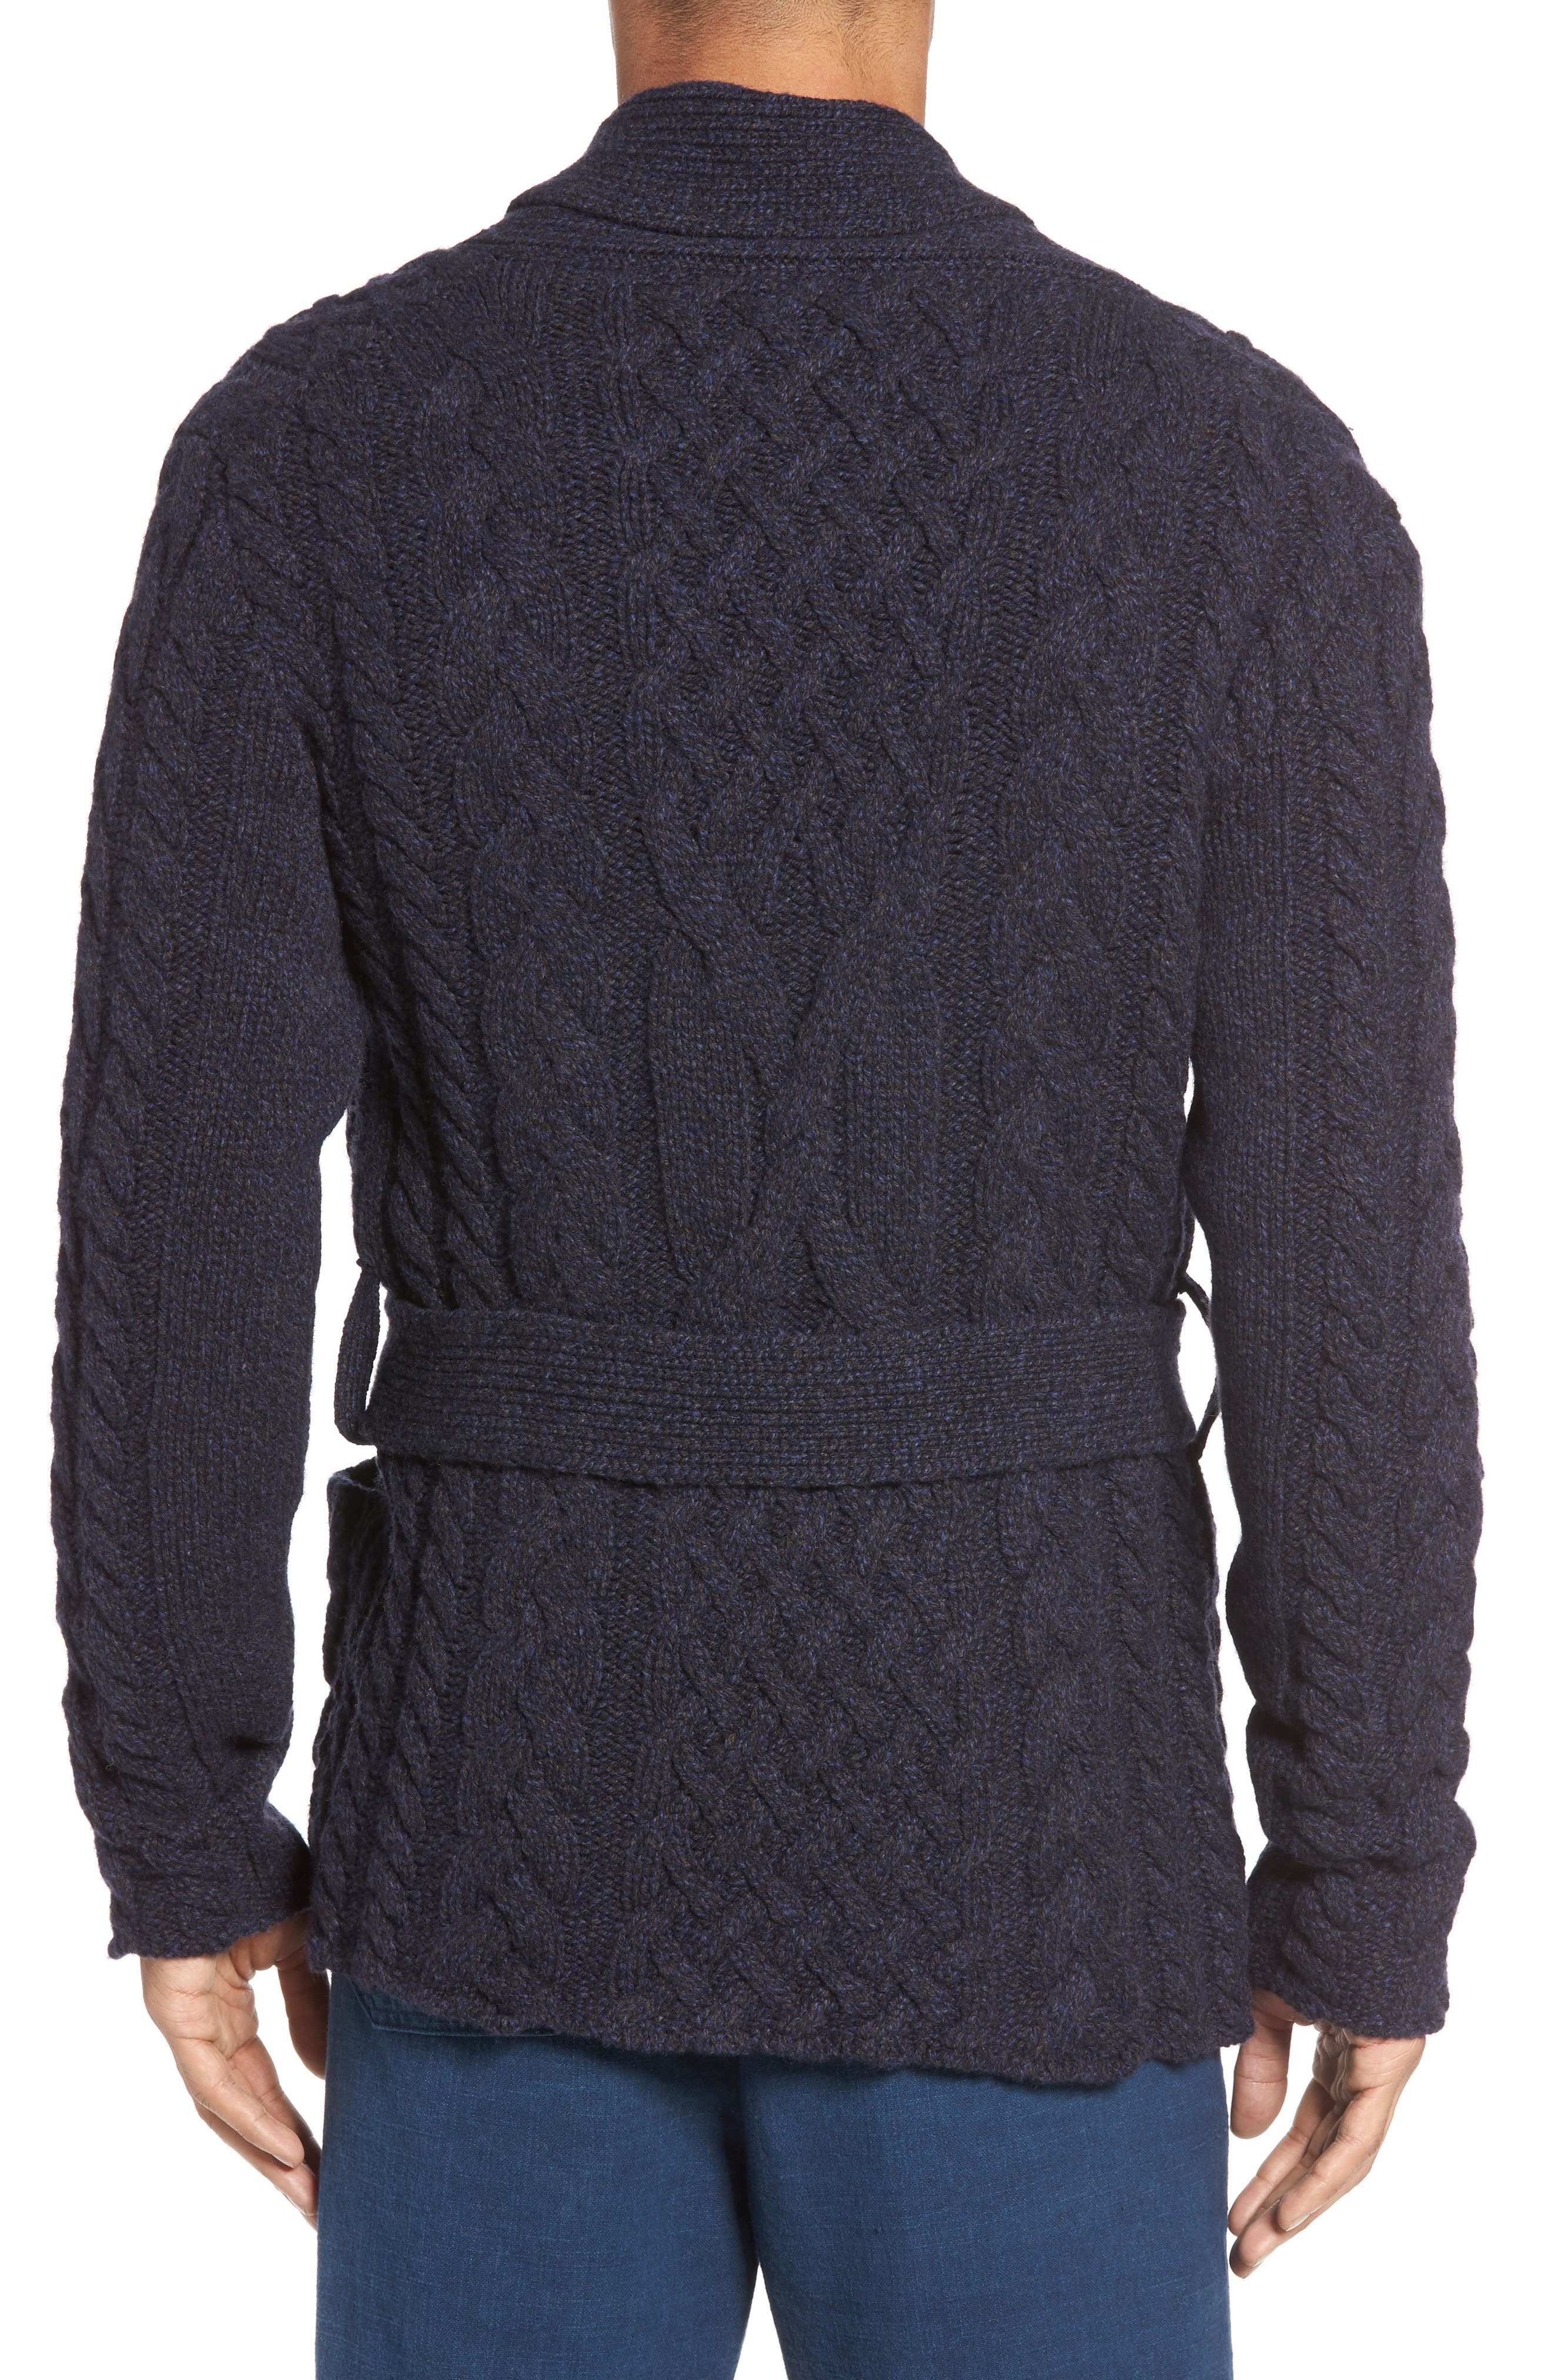 EIDOS,                             Napoli Cable Knit Wool Cardigan,                             Alternate thumbnail 2, color,                             405